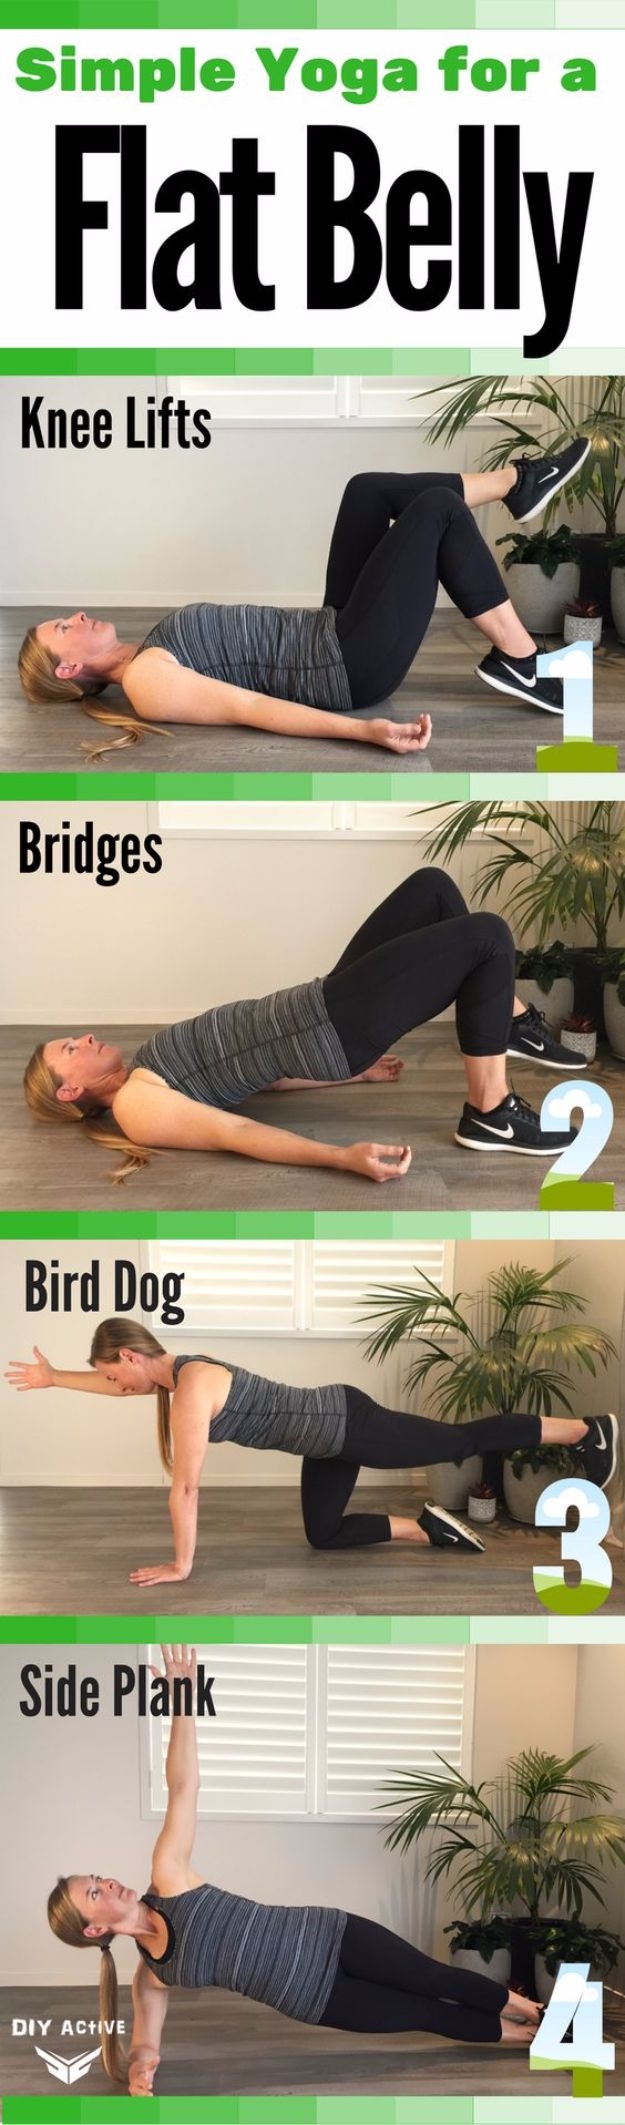 Best Exercises for 2018 - Beginner Yoga for a Strong Core and Flat Belly - Easy At Home Exercises - Quick Exercise Tutorials to Try at Lunch Break - Ways To Get In Shape - Butt, Abs, Arms, Legs, Thighs, Tummy http://diyjoy.com/best-at-home-exercises-2018